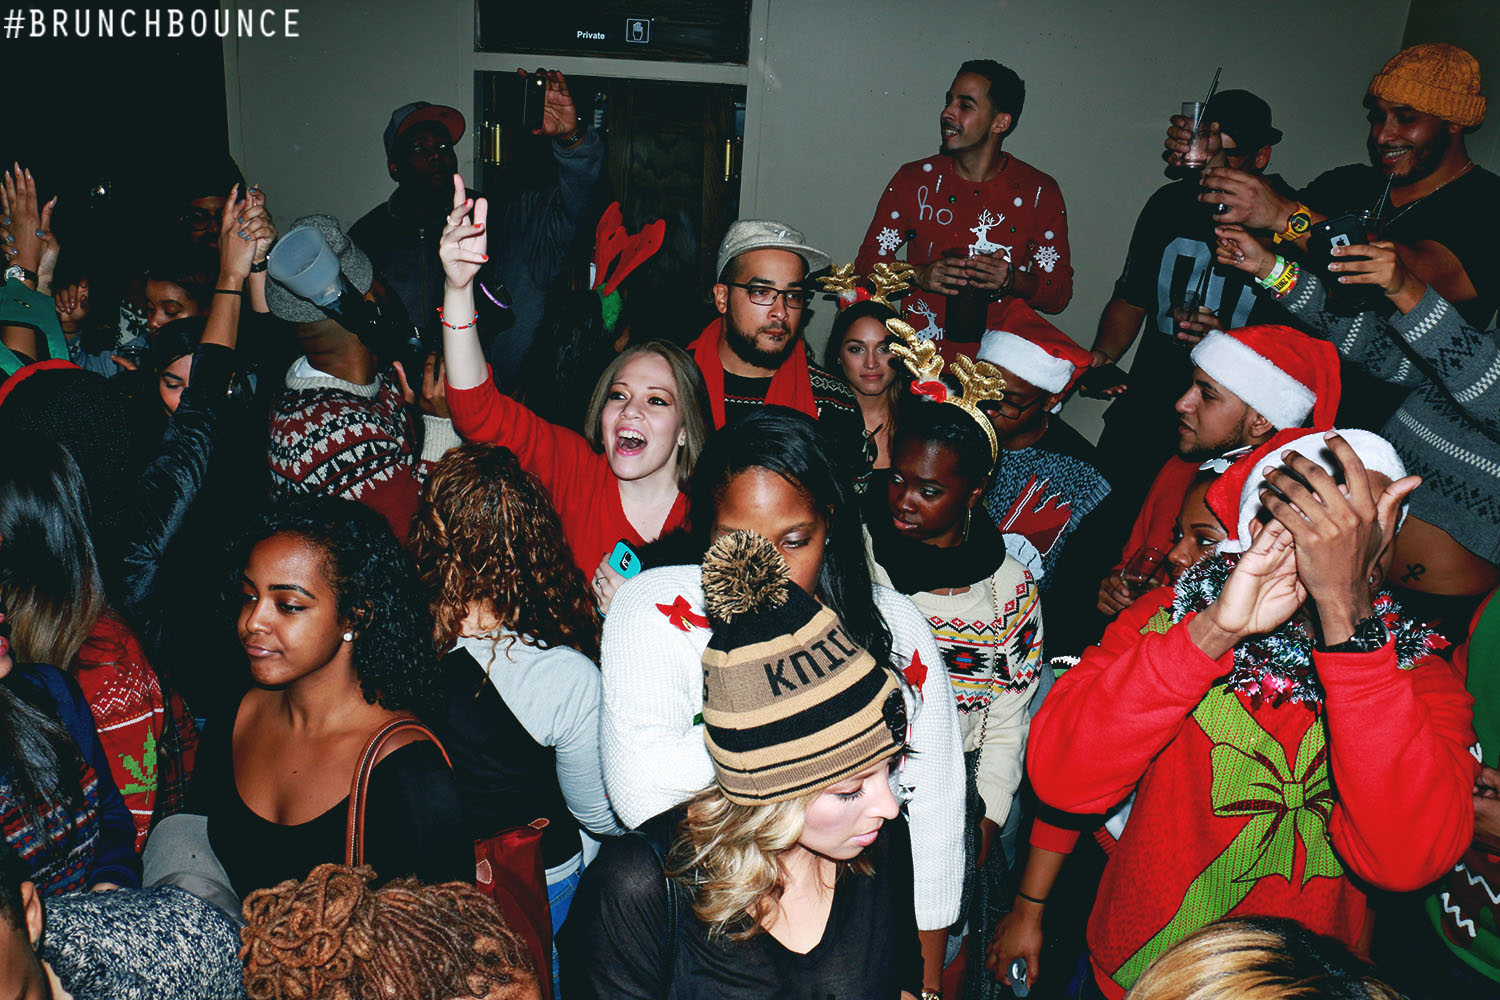 brunchbounce-ugly-christmas-sweater-party-122014_16080805951_o.jpg